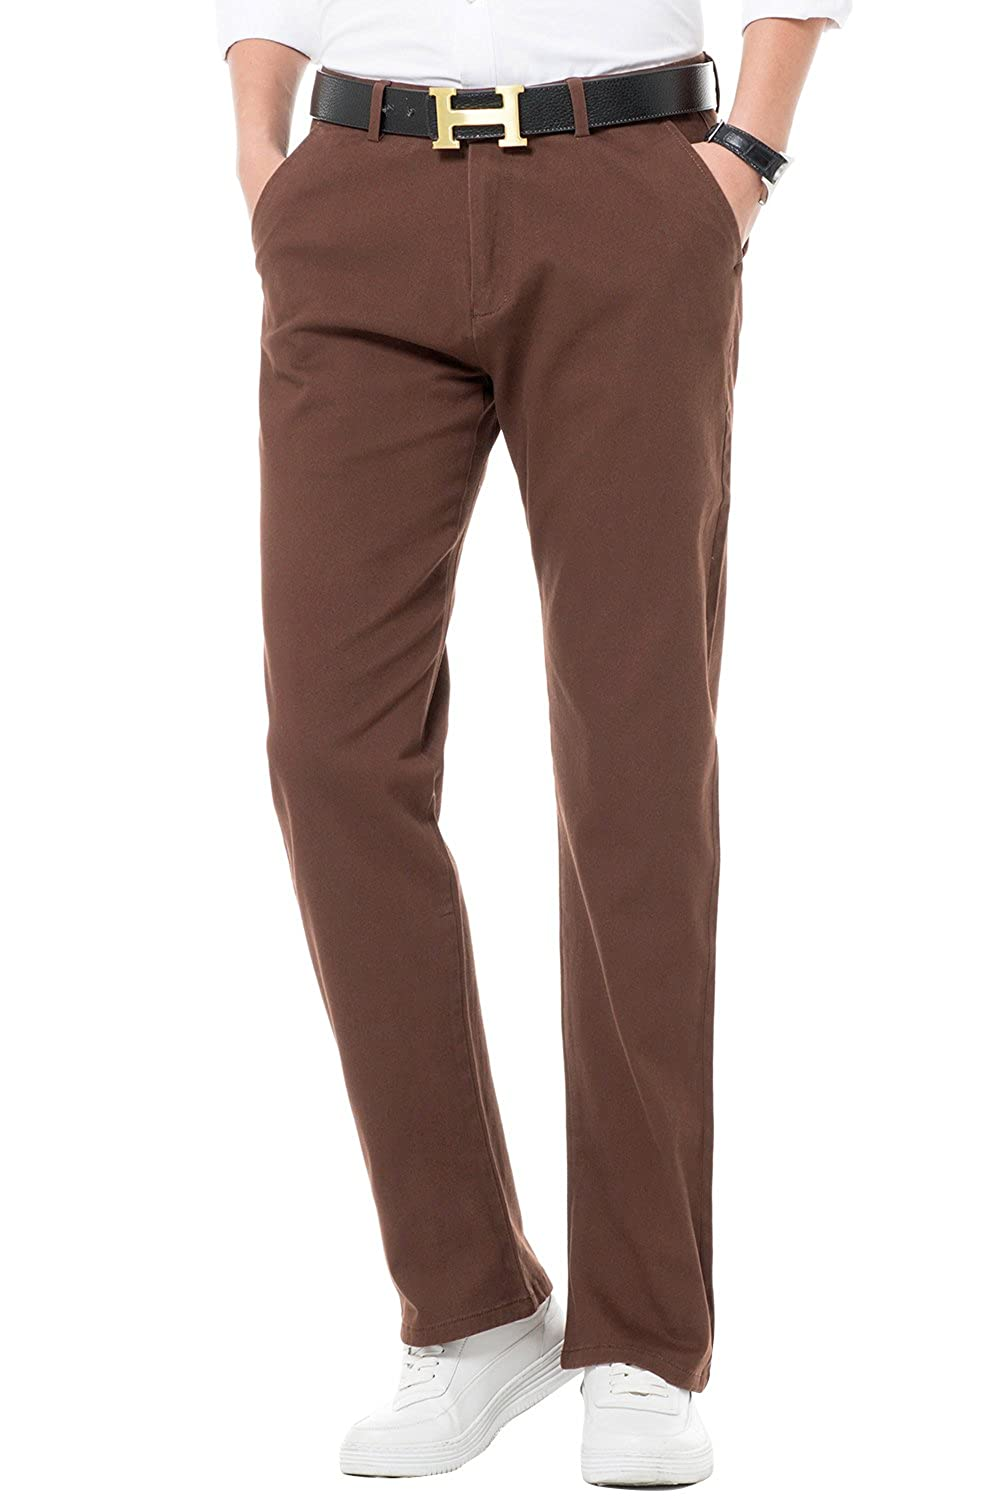 INFLATION Men's Stretchy Straight Fit Casual Pants, Blend Combed Cotton Flat Front Formal Trousers Dress Pants